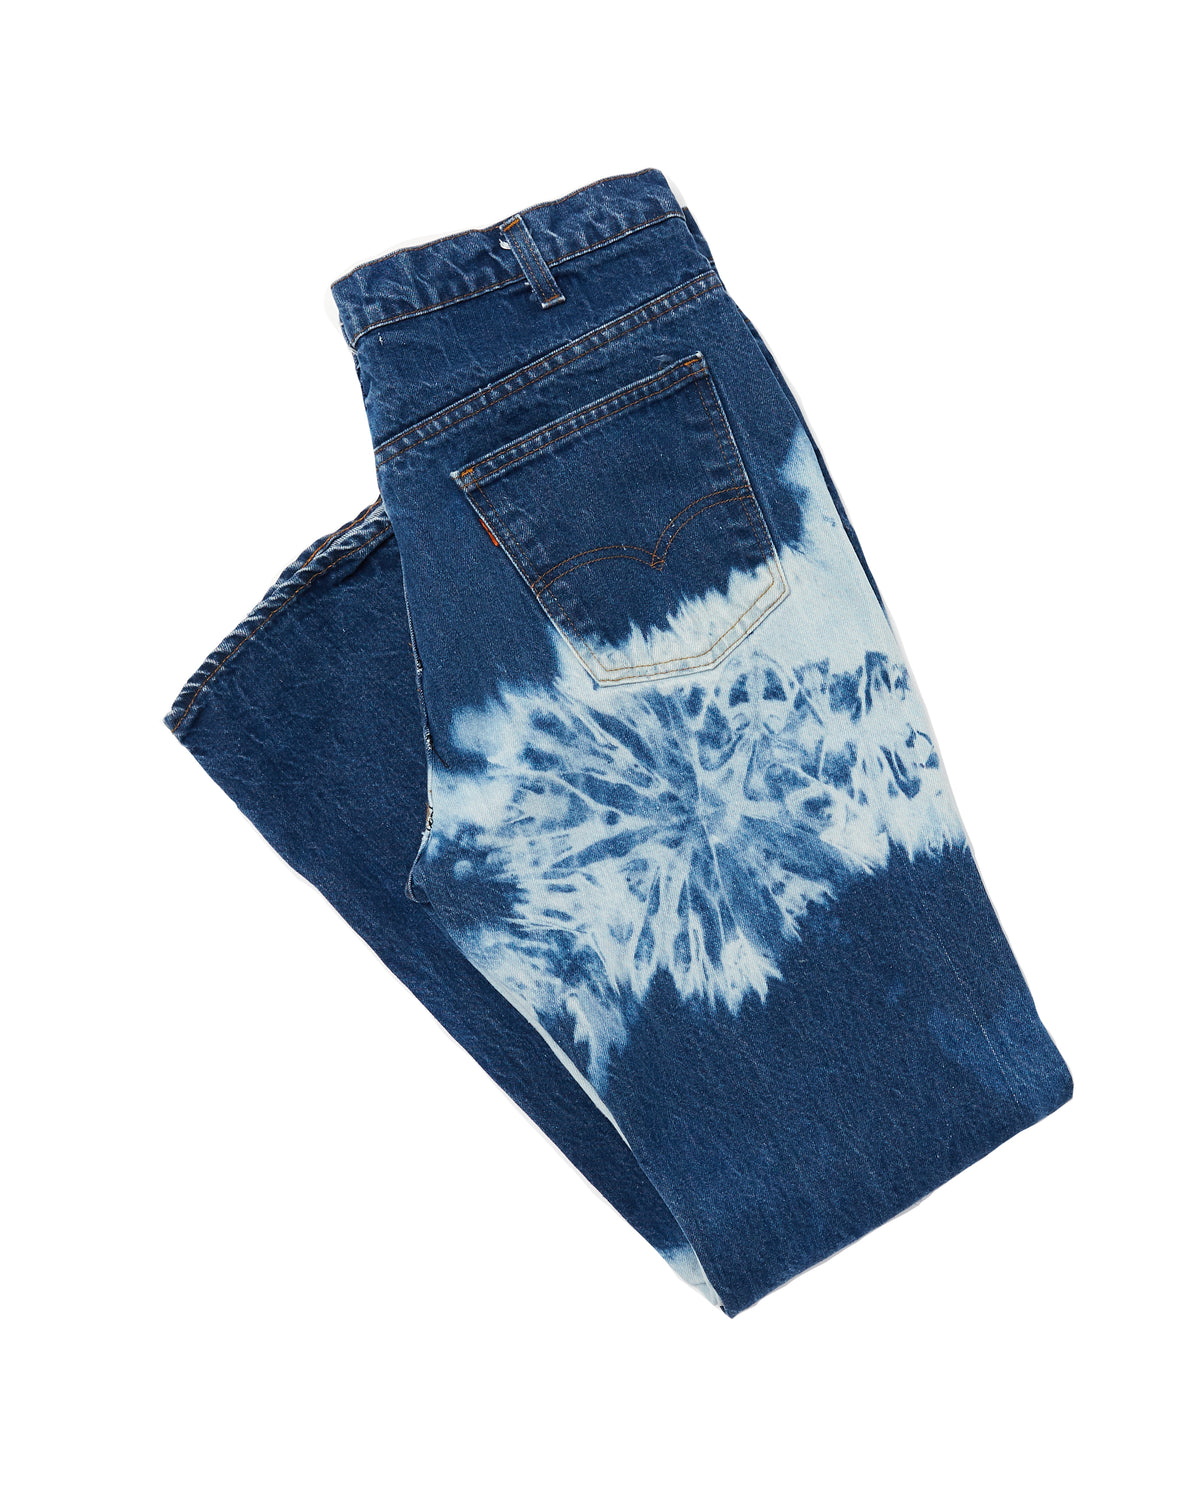 Vintage Hand-Dyed Levi's - riverside tool & dye